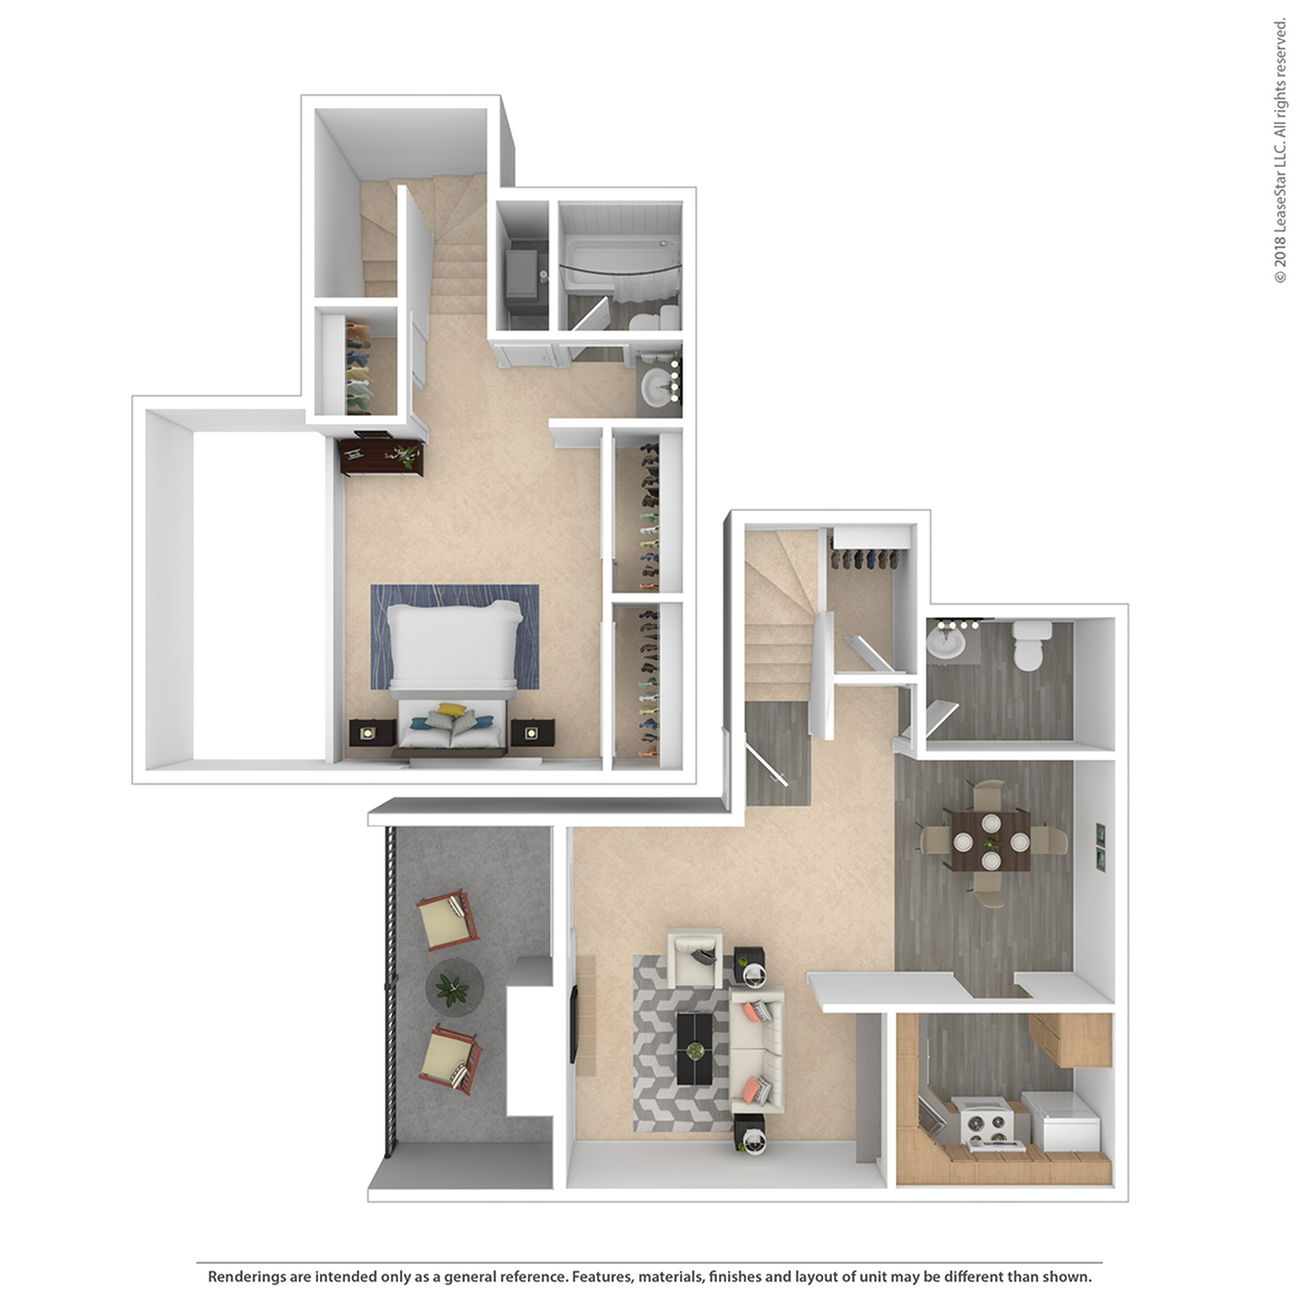 1 Bdrm Floor Plan | 2 Bedroom Apartments Denver | The Lodge on 84th